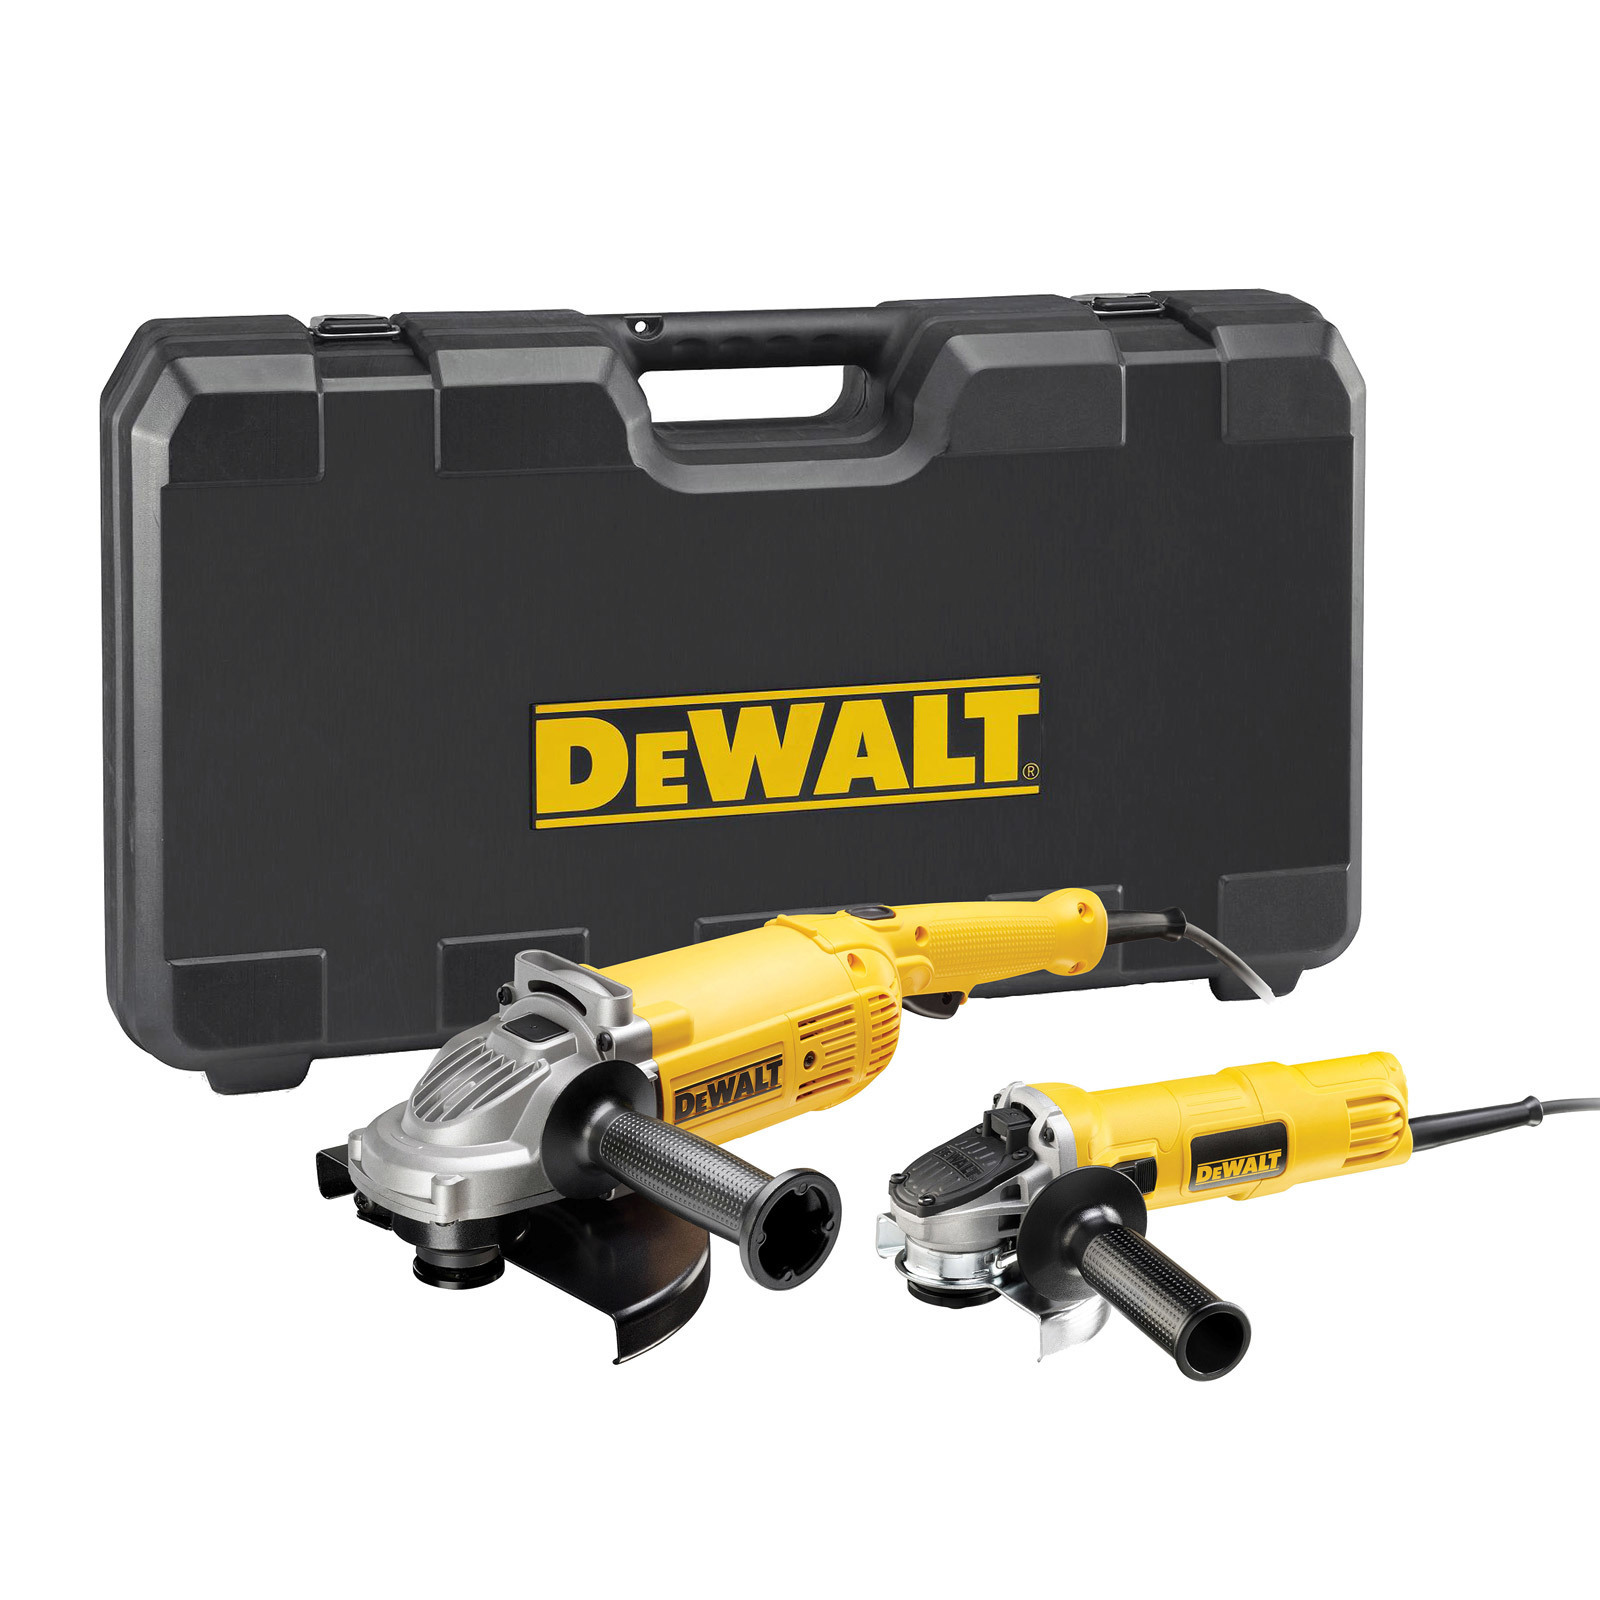 dewalt dwe494twin winkelschleifer doppel set 230 mm 2200 w 125 mm 900 w ebay. Black Bedroom Furniture Sets. Home Design Ideas